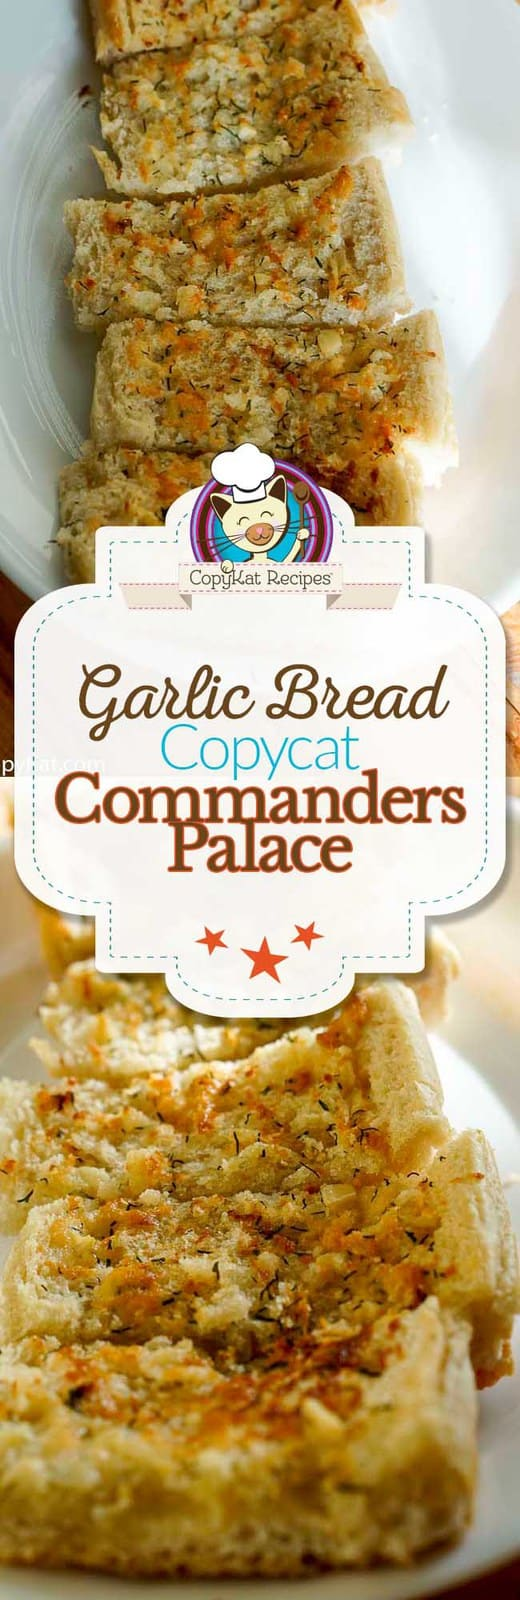 You can recreate Commander's Palace famous garlic bread with this easy copycat recipe. #bread #garlicbread #commanderspalace #copycat #garlic